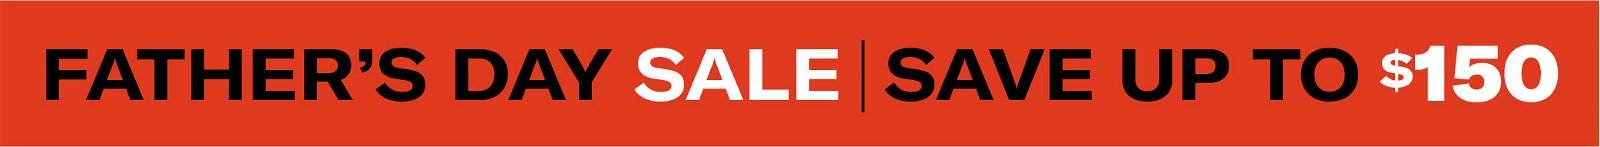 Father's Day Sale | Save Up To $150